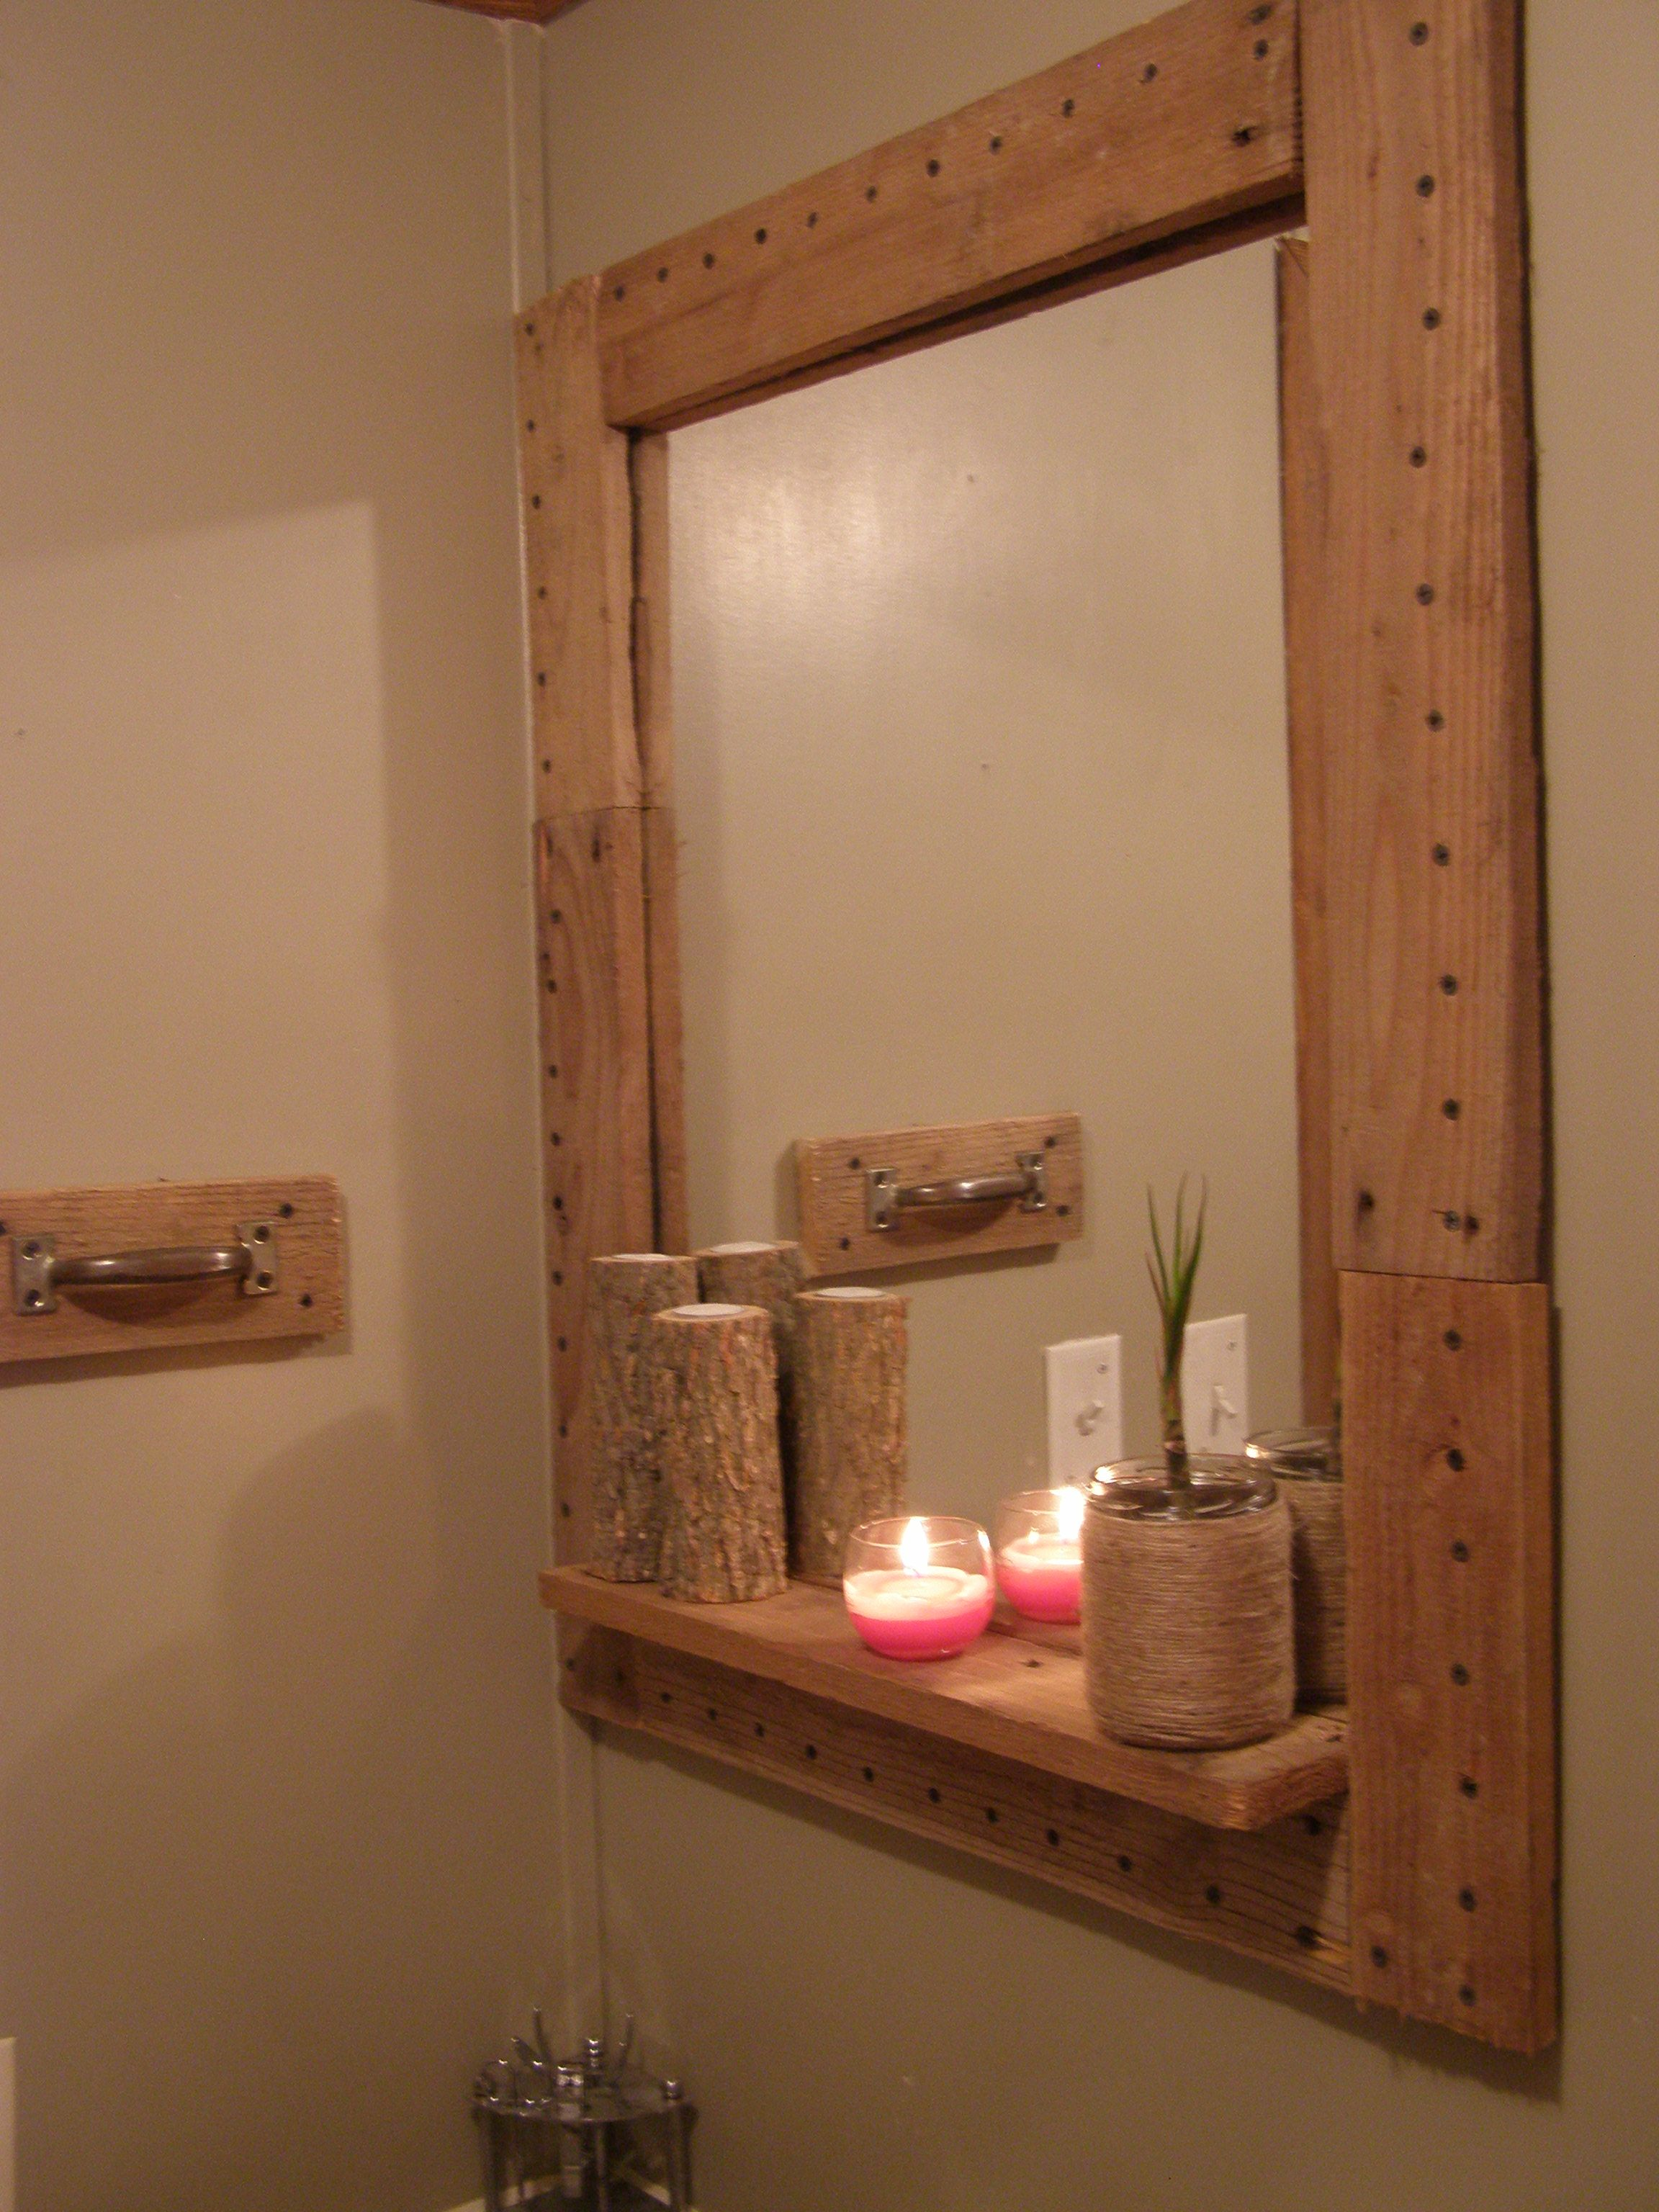 Framed My Bathroom Mirror With Pallets The Towel Hanger Is A Piece Of Pallet And An Old Drawer